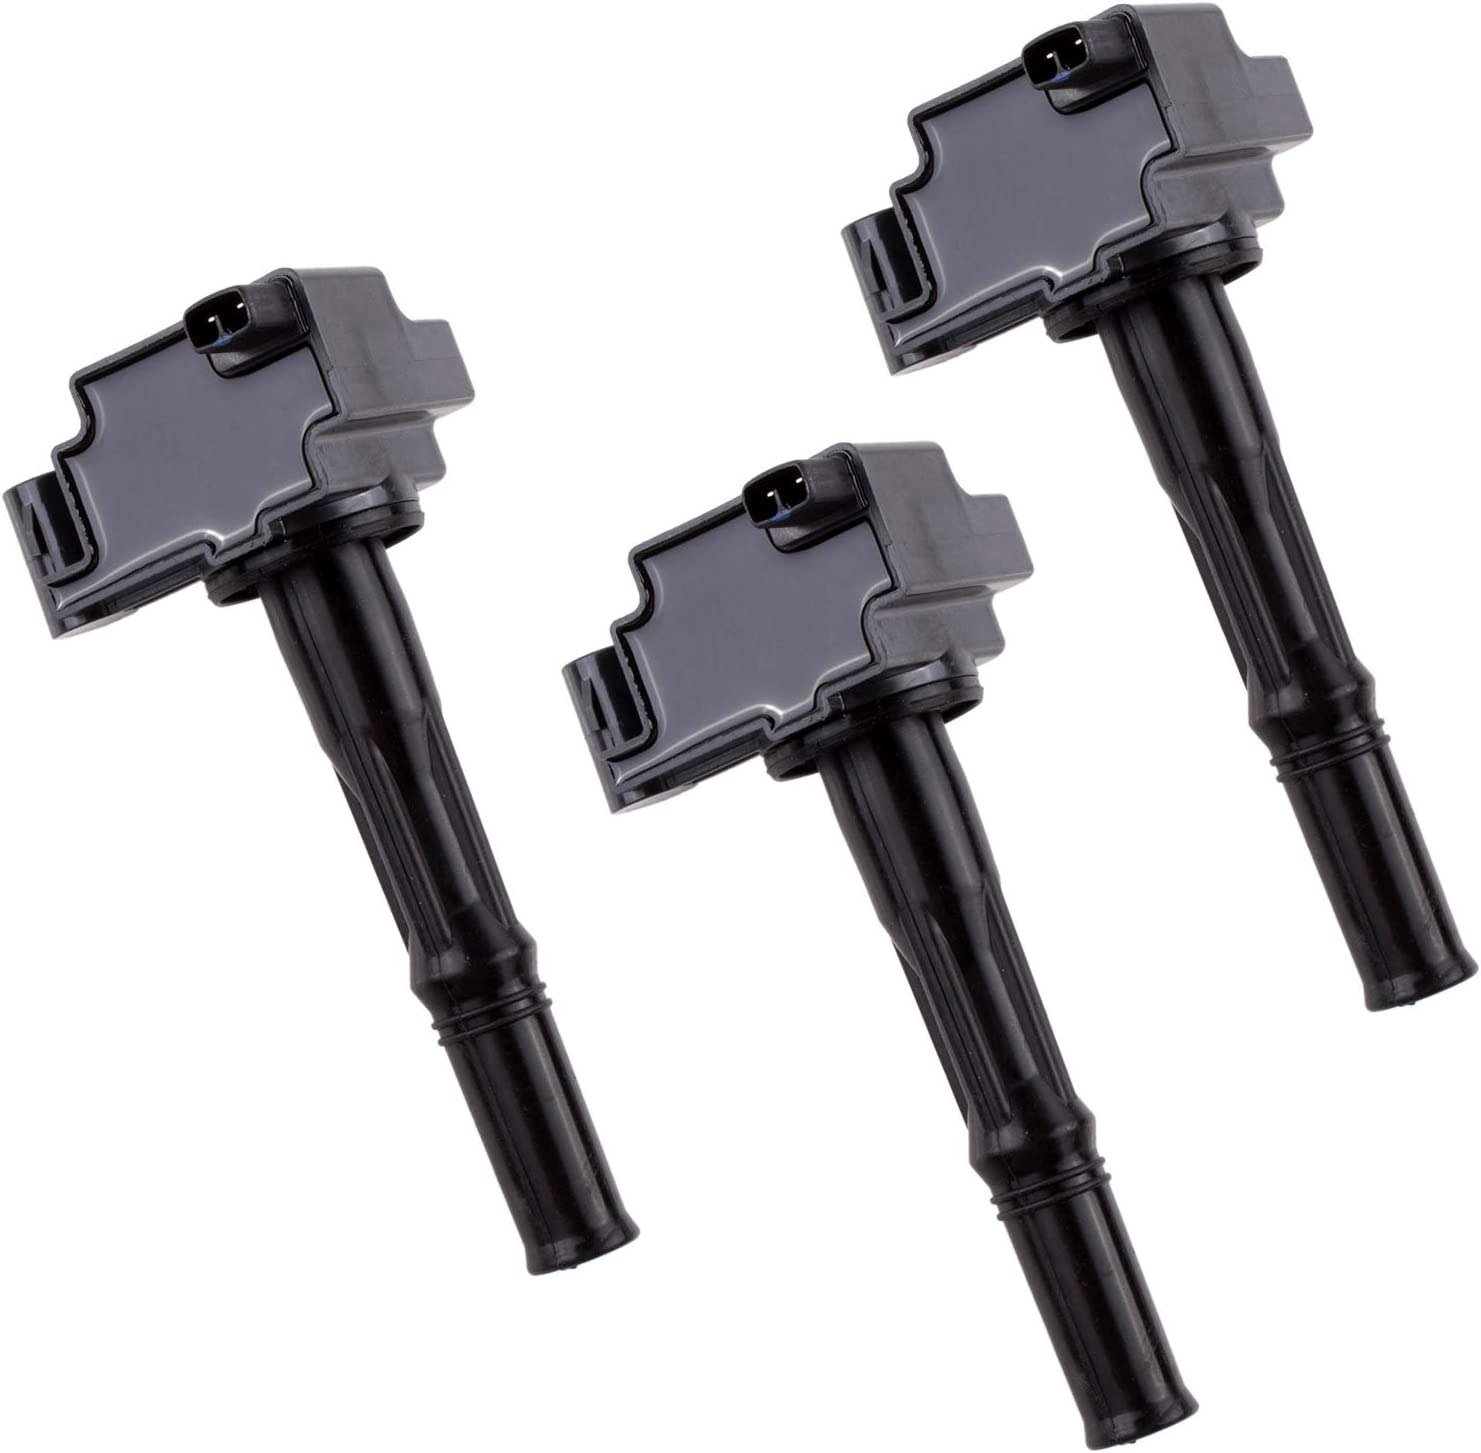 2000-2004 Toyota Tundra 1995-1998 Toyota T100 Set of 3 DWVO Ignition Coil Pack Fit for 1995-2004 Toyota Tacoma 1996-2002 Toyota 4Runner